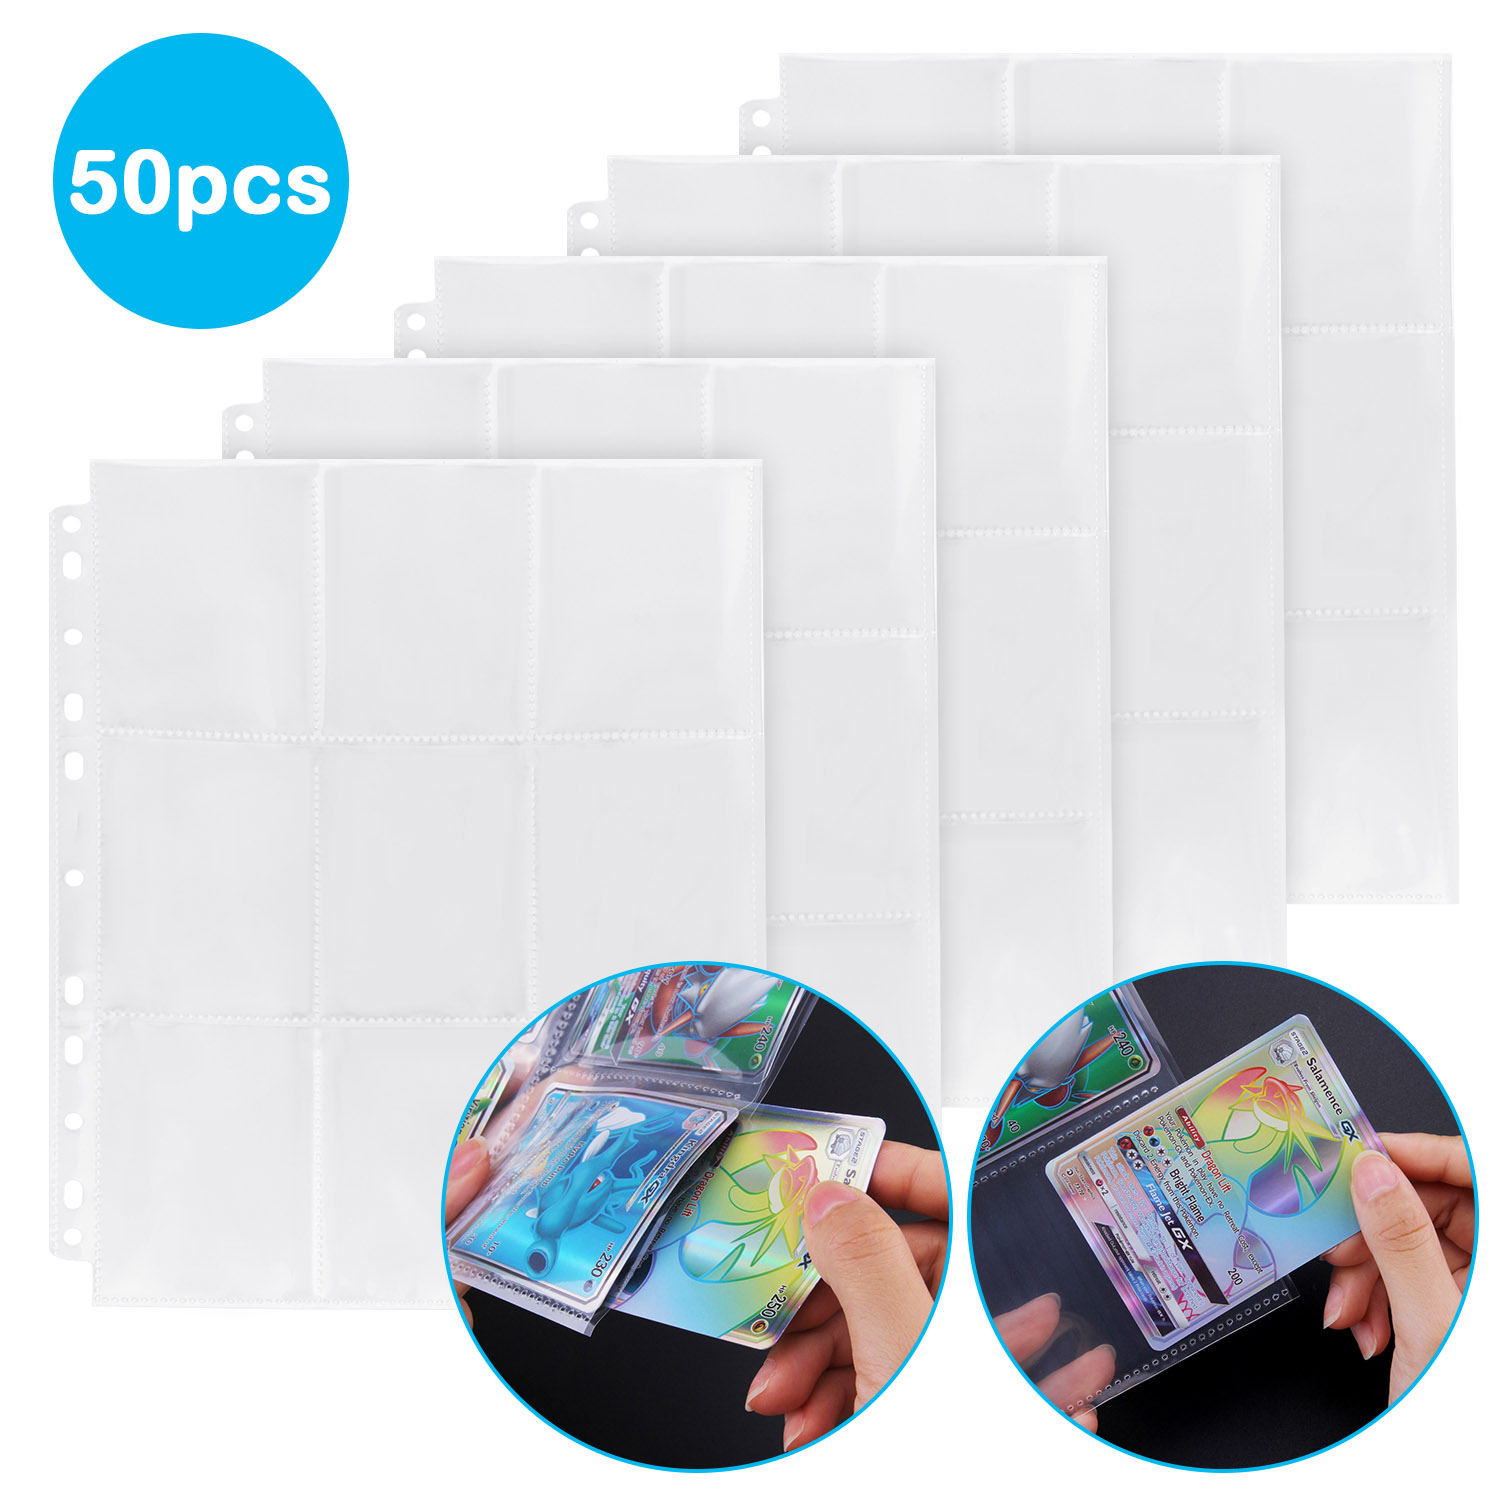 9 Pocket Pages Protectors Trading Card Coupon Sleeves 11 Ring Binder Sheets For Sport Game Cards 50 Pages